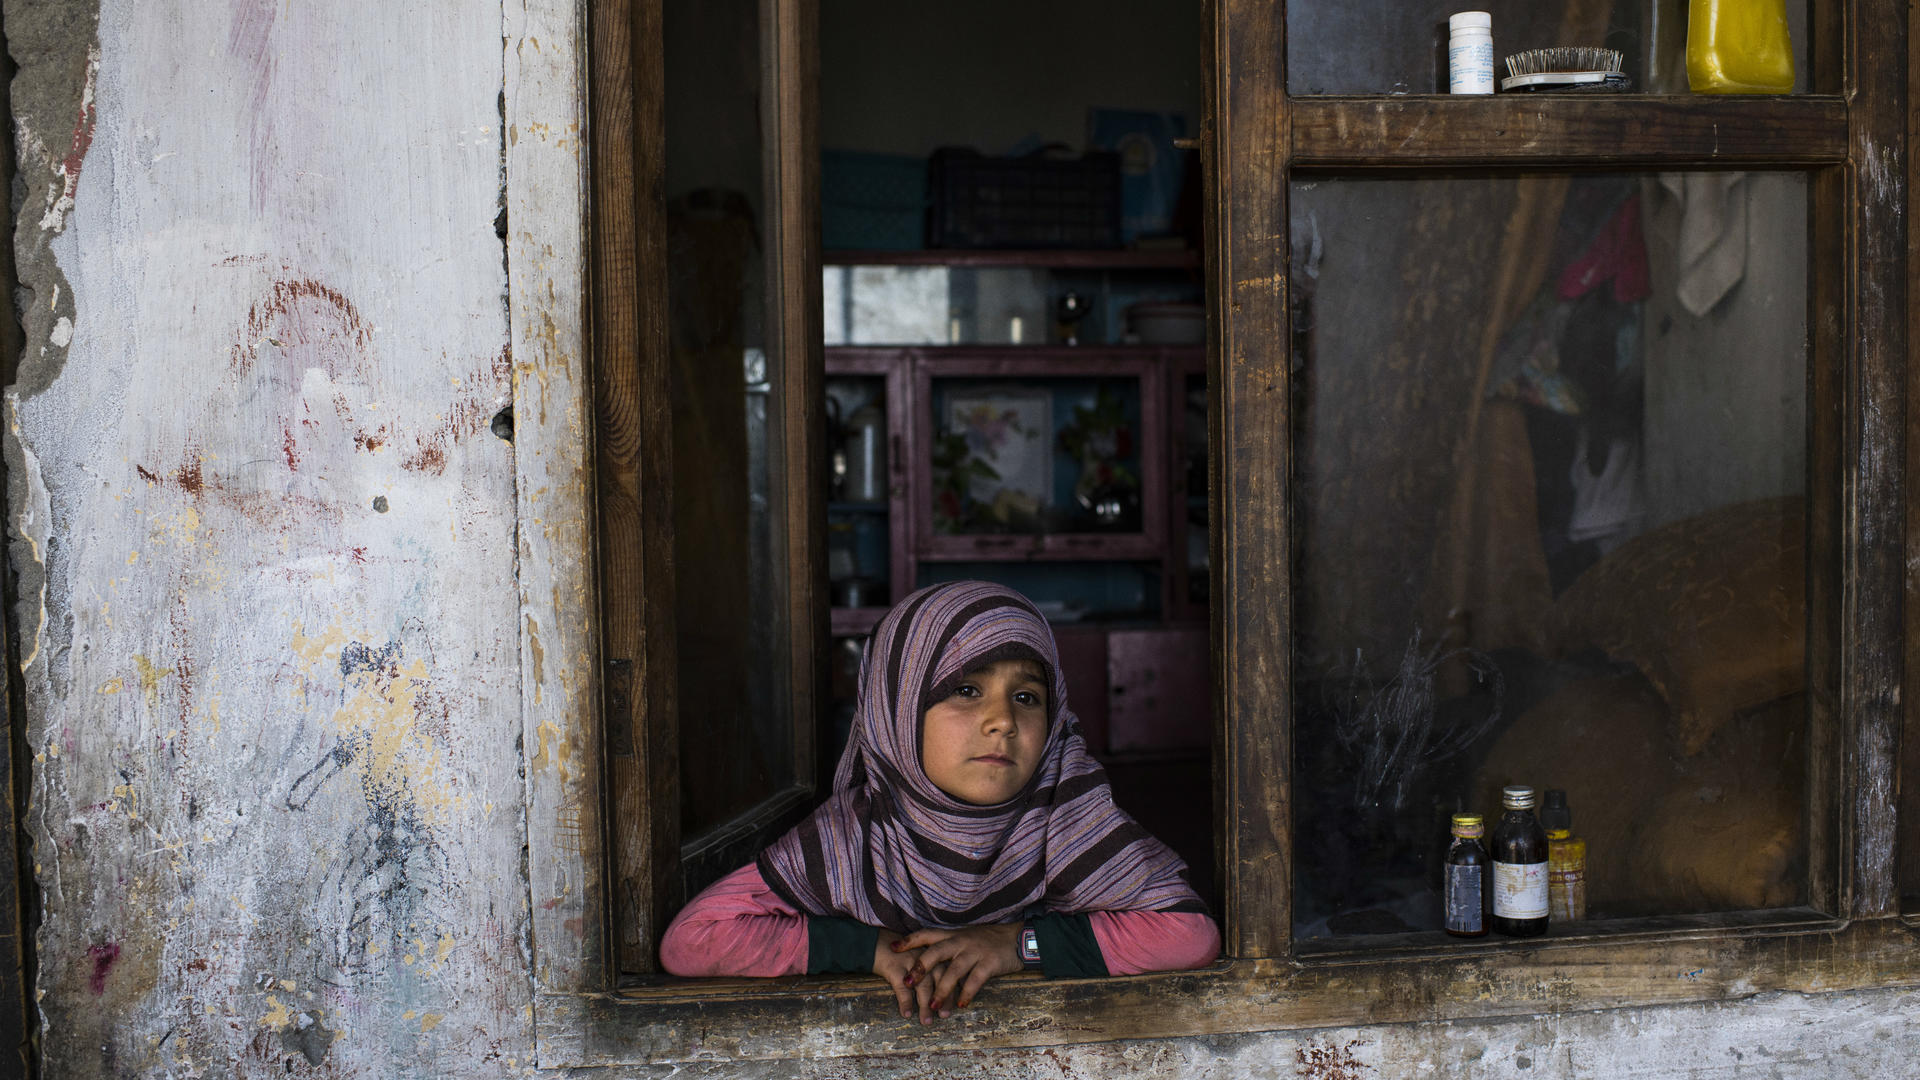 An Afghan girl  looks out the window of her home